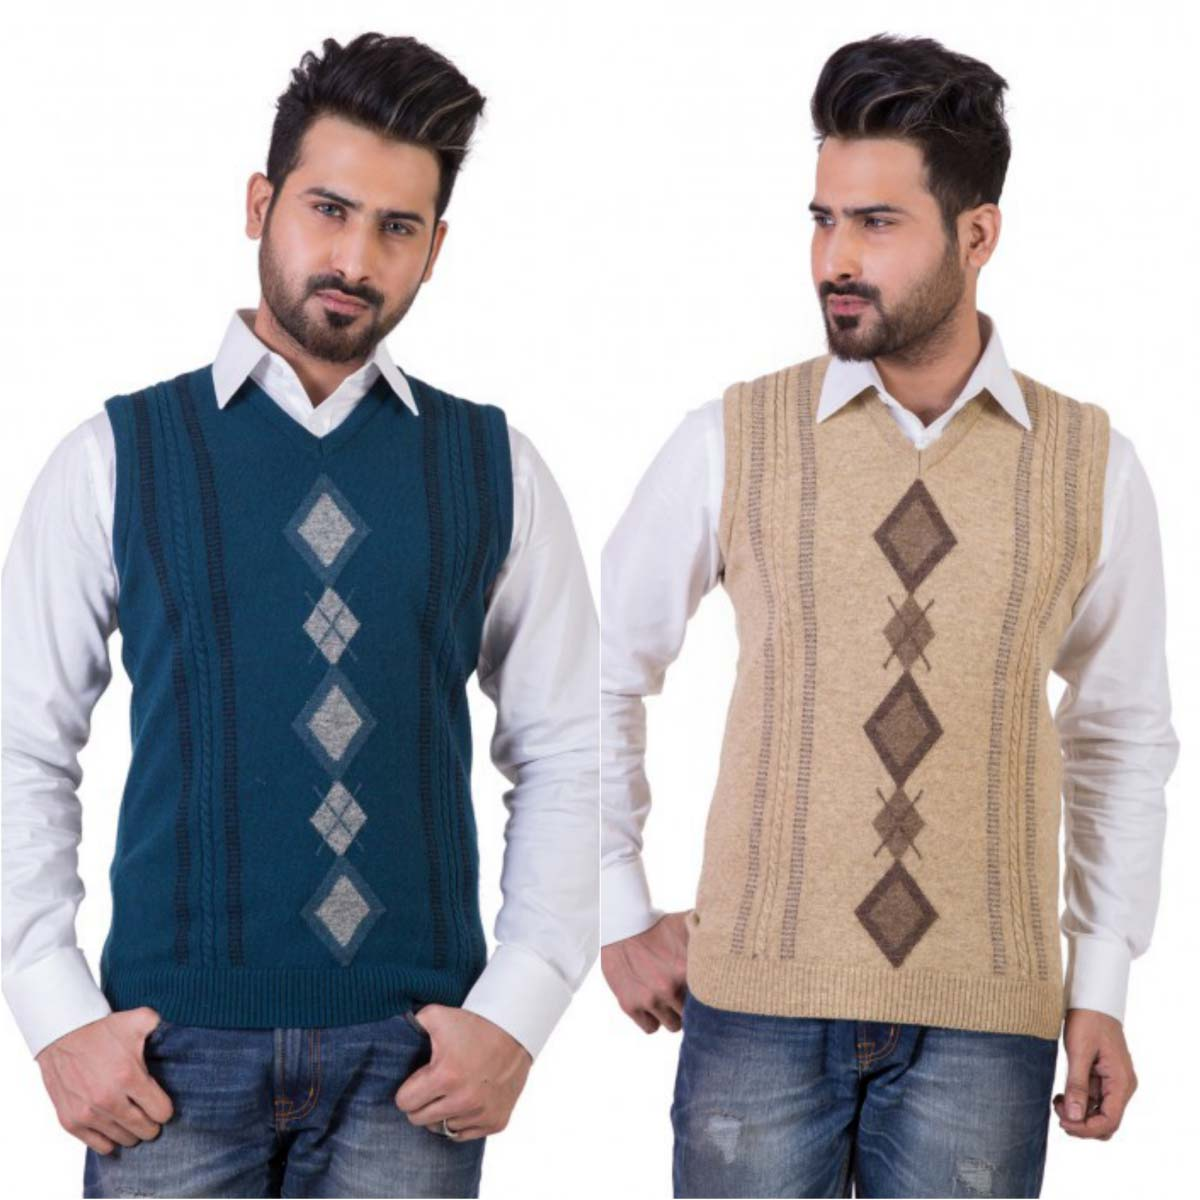 bonanza-winter-sweaters-and-outfits-2017-2018-for-men-3